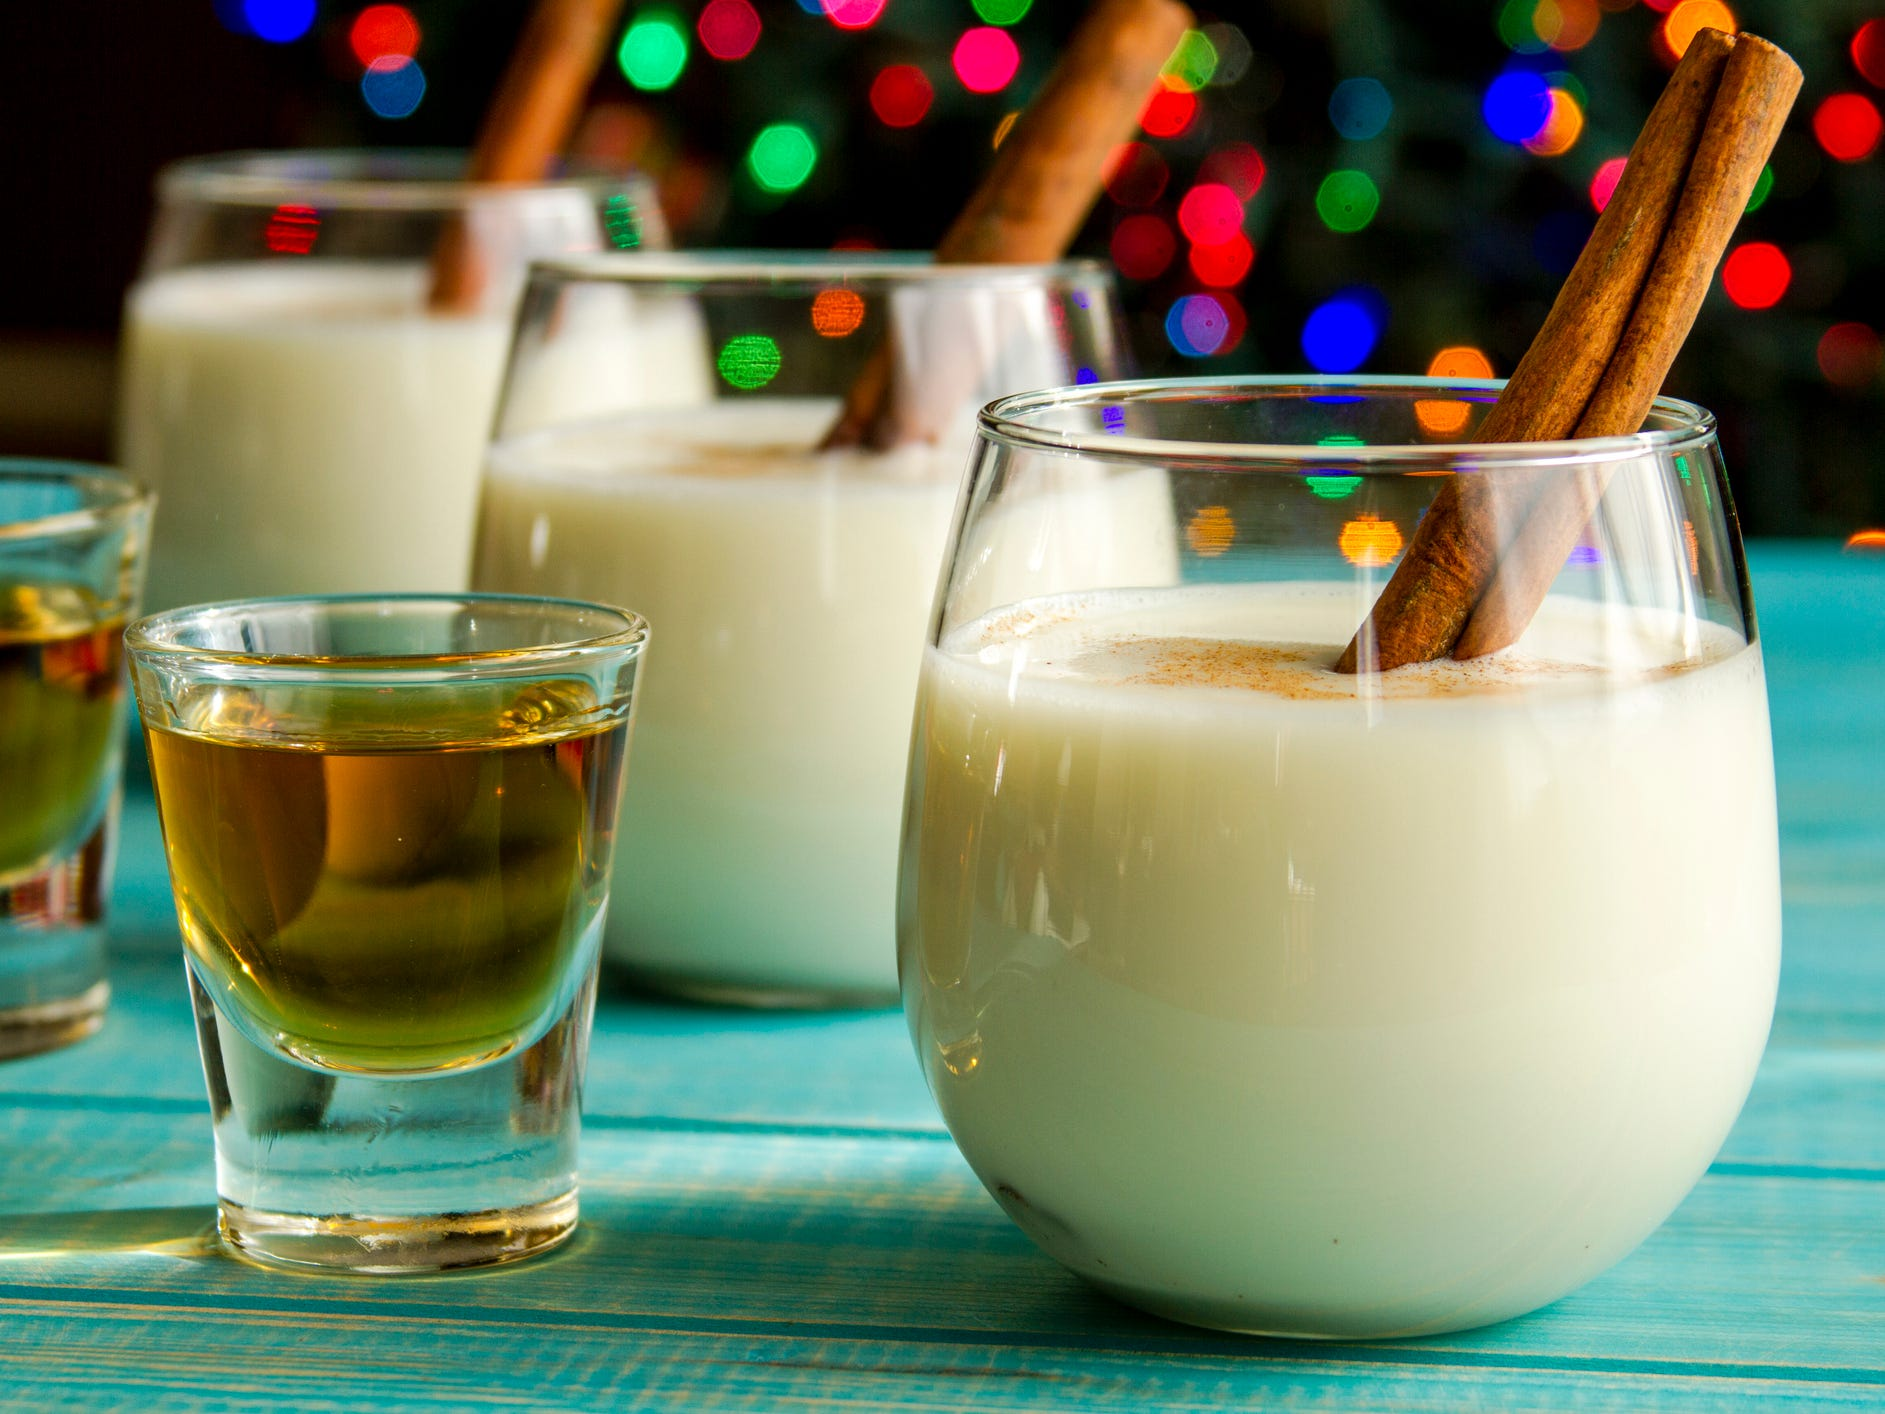 Eggnog, various countries: Eggnog may be a drink, but you should think of it more as a meal replacement shake. This creamy beverage packs about 400 calories, 19 grams of fat and 21 grams of sugar into one cup. On the bright side, you'll also get about 9.7 grams of protein (and maybe a nice buzz if it's spiked).